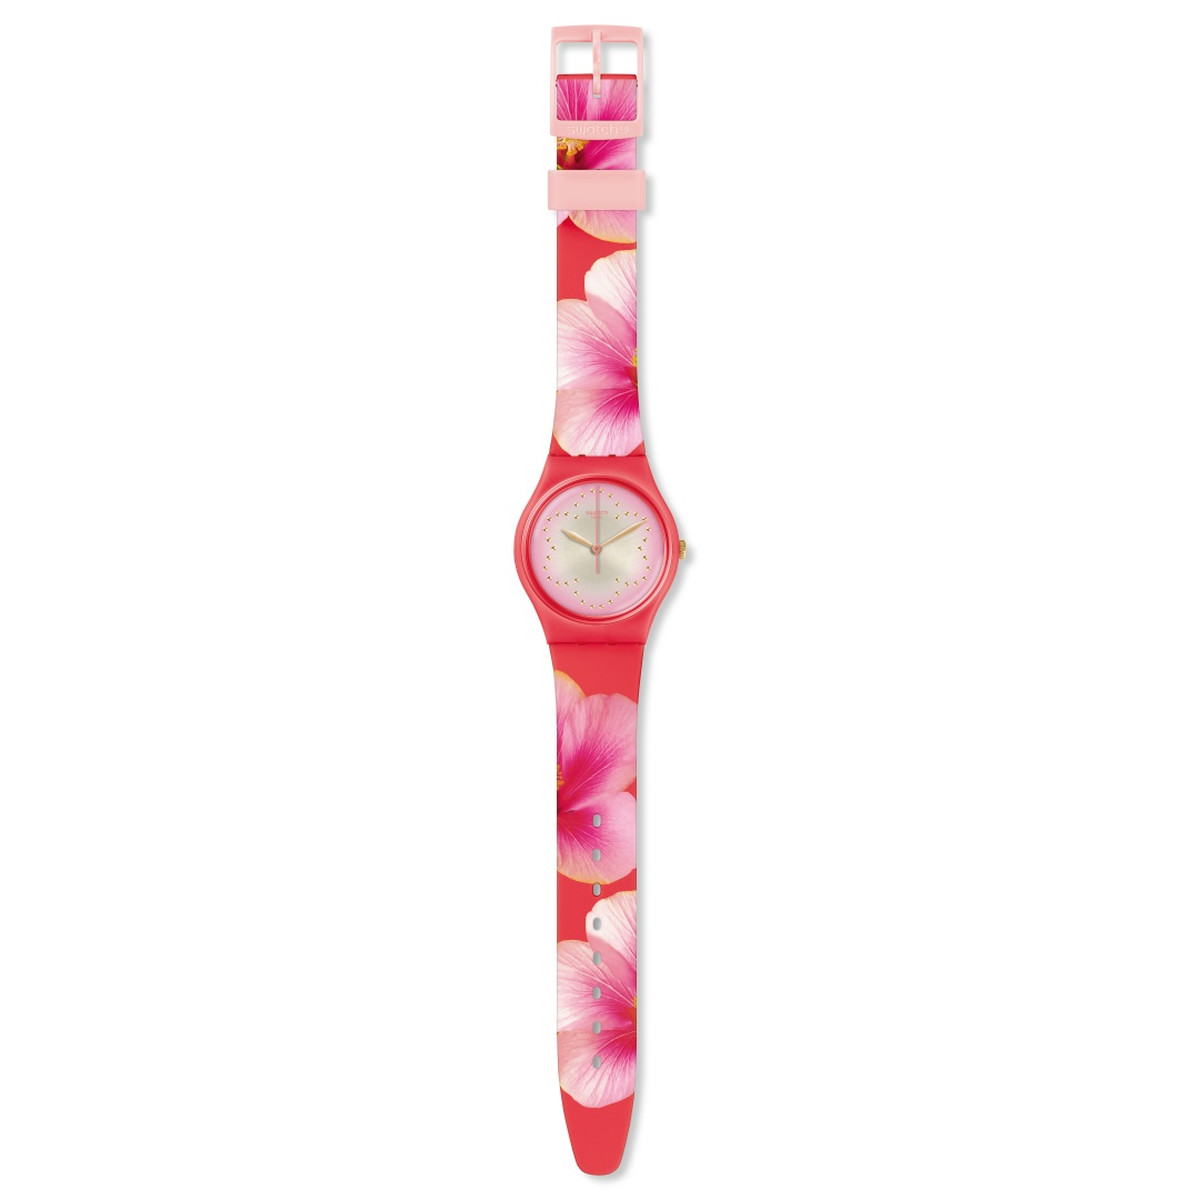 Montre Swatch mixte silicone rose - vue VD1